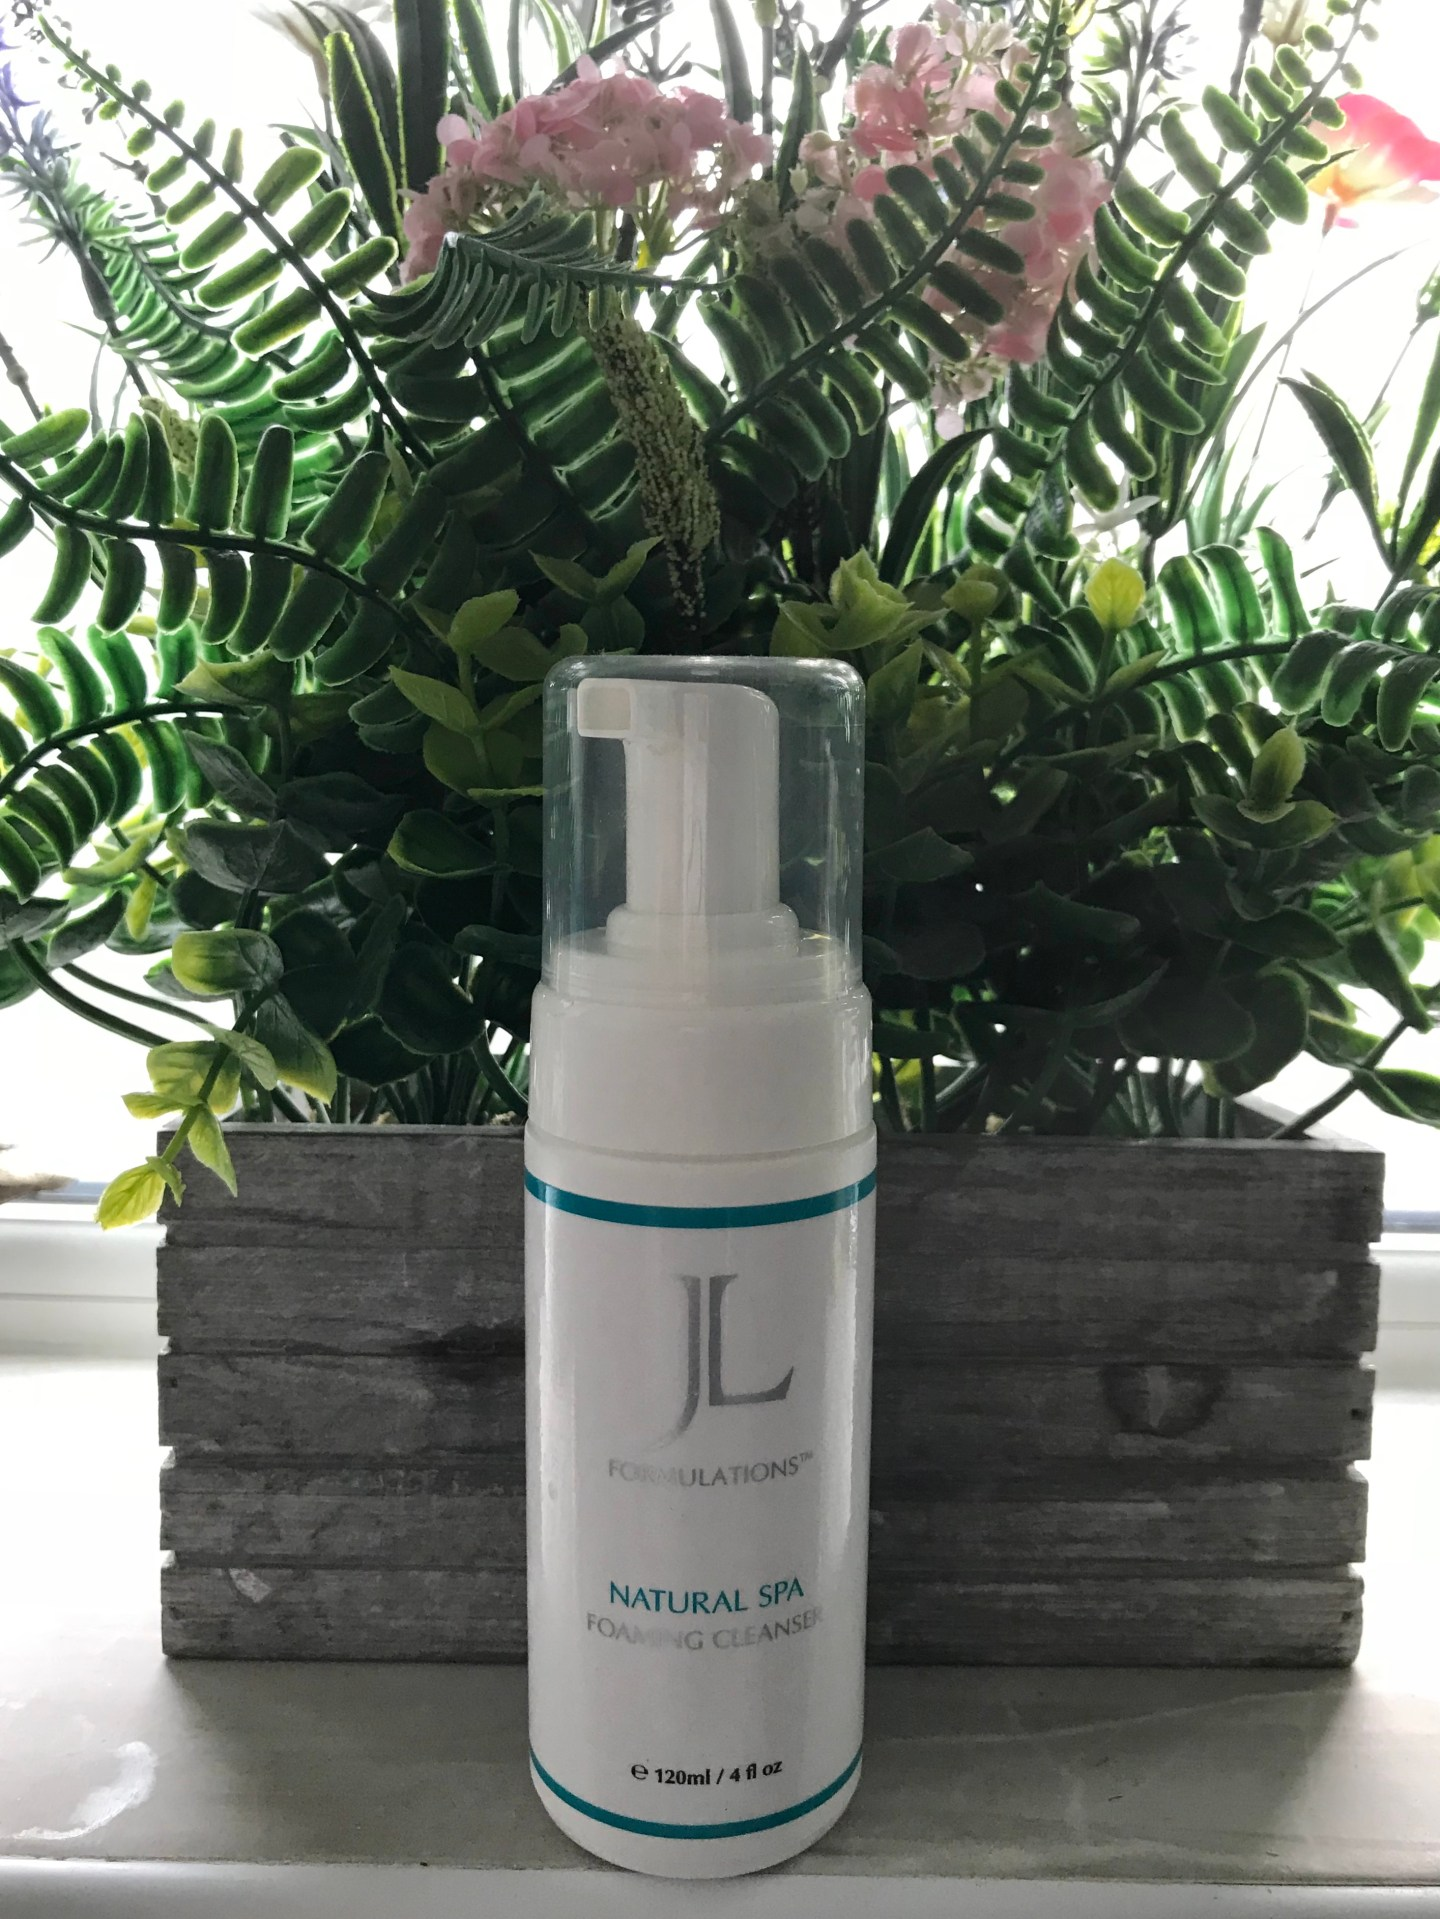 JL Formulations Natural Spa Foaming Cleanser Review